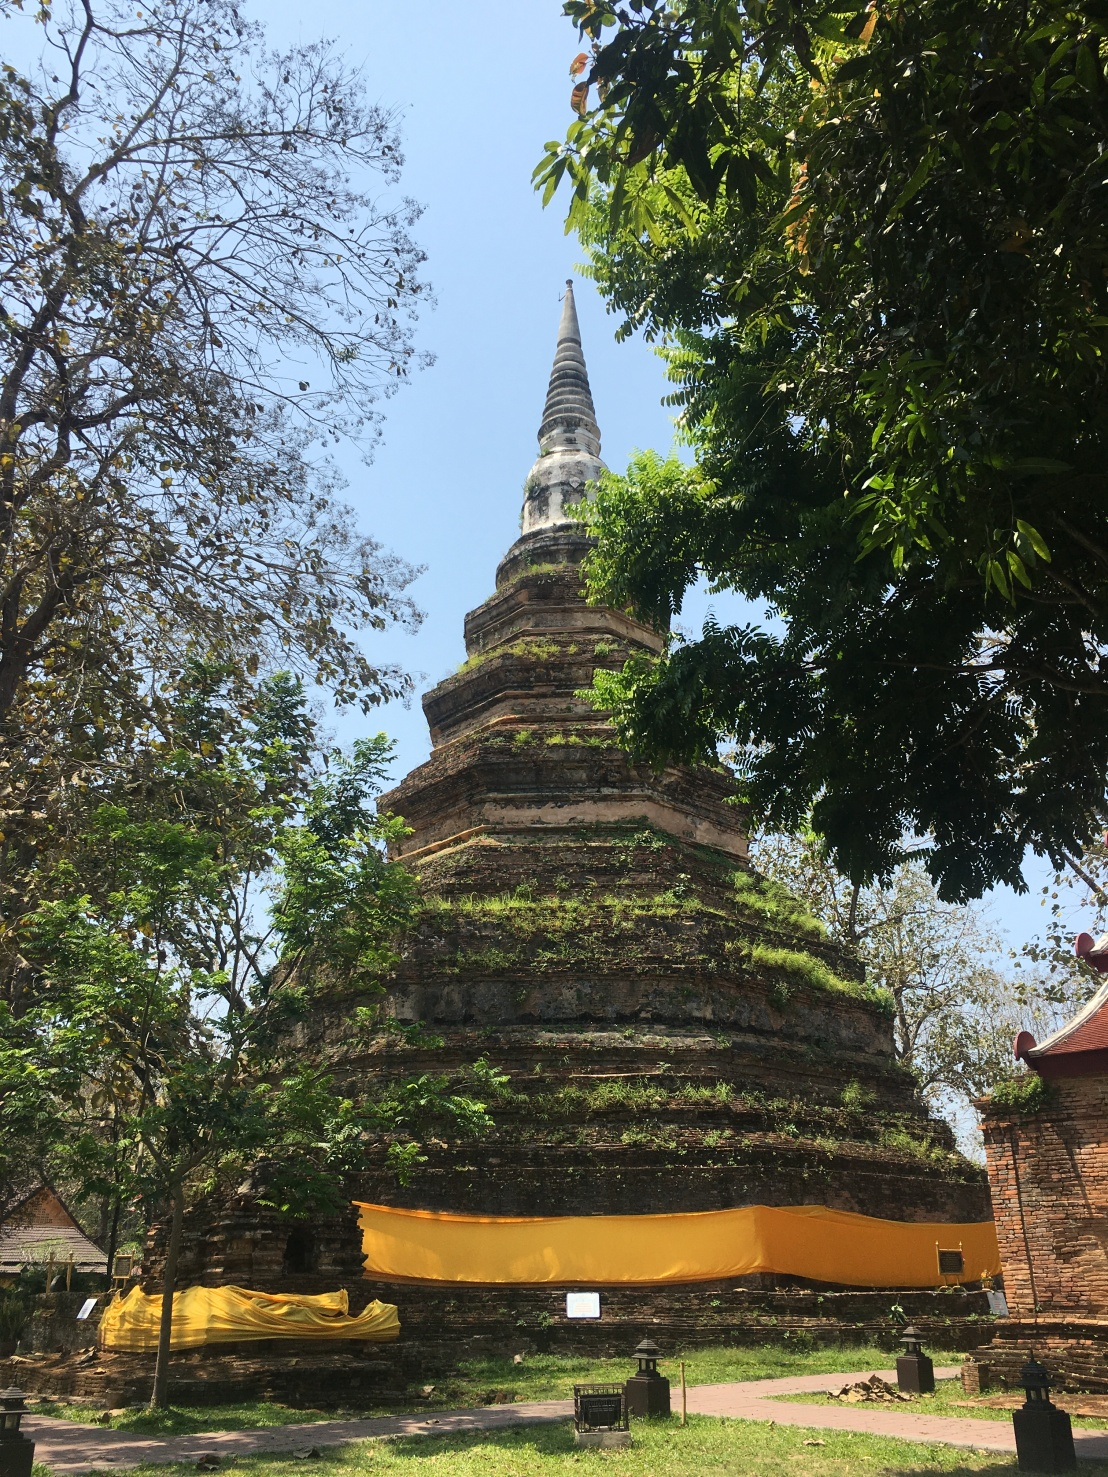 Thawee Hot Springs:White Temple:Wat Chedi Luang:Golden Triangle 83